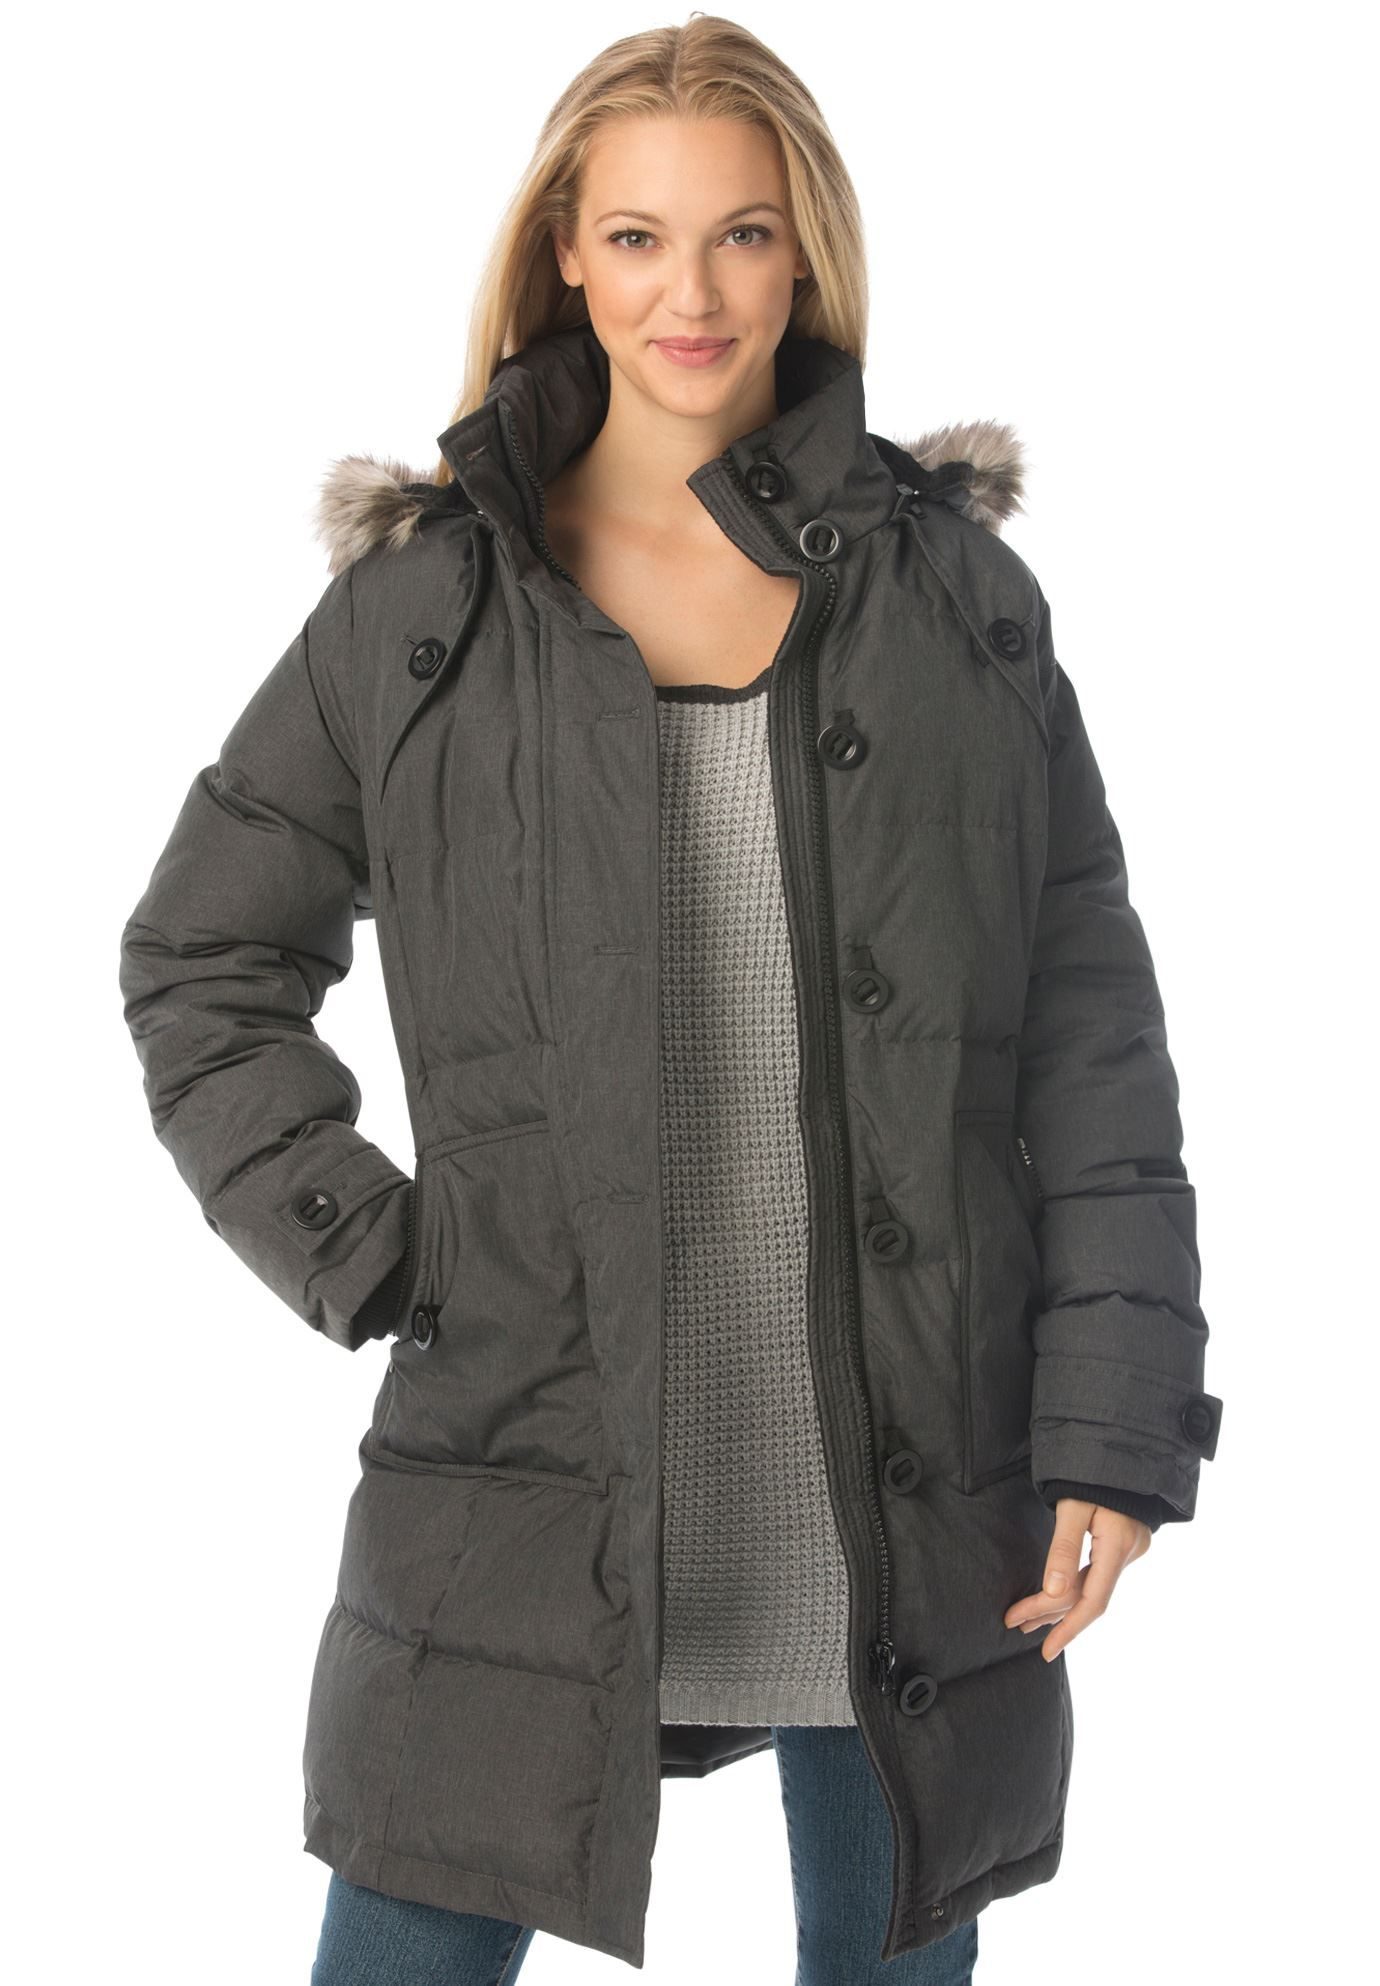 Heathered, hooded down puffer coat Plus size puffer coat